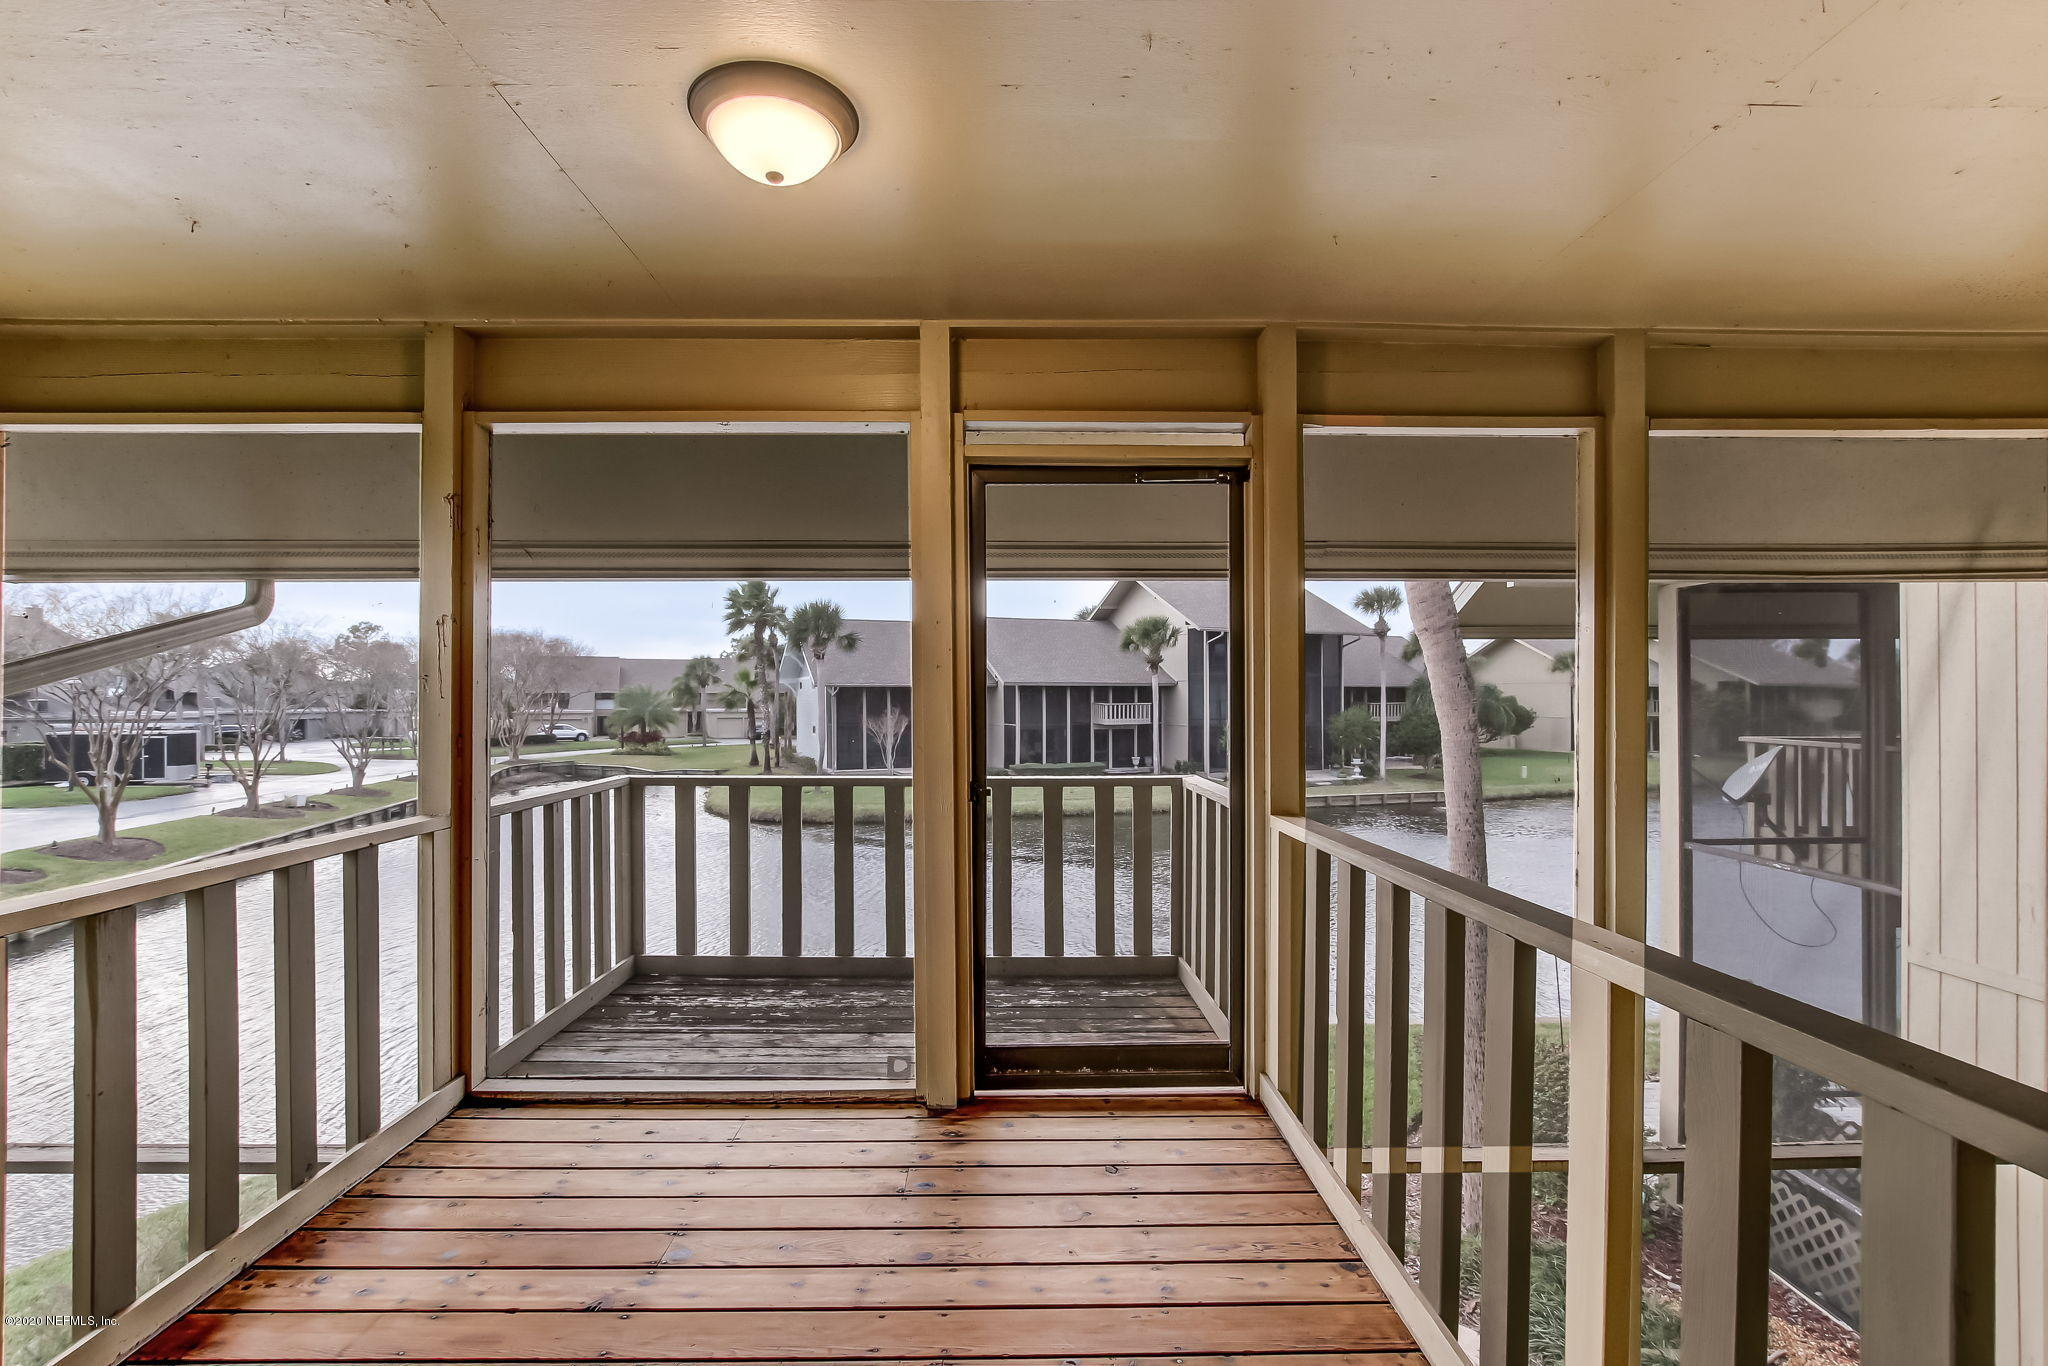 243 DEER RUN, PONTE VEDRA BEACH, FLORIDA 32082, 3 Bedrooms Bedrooms, ,2 BathroomsBathrooms,Rental,For Rent,DEER RUN,1037607